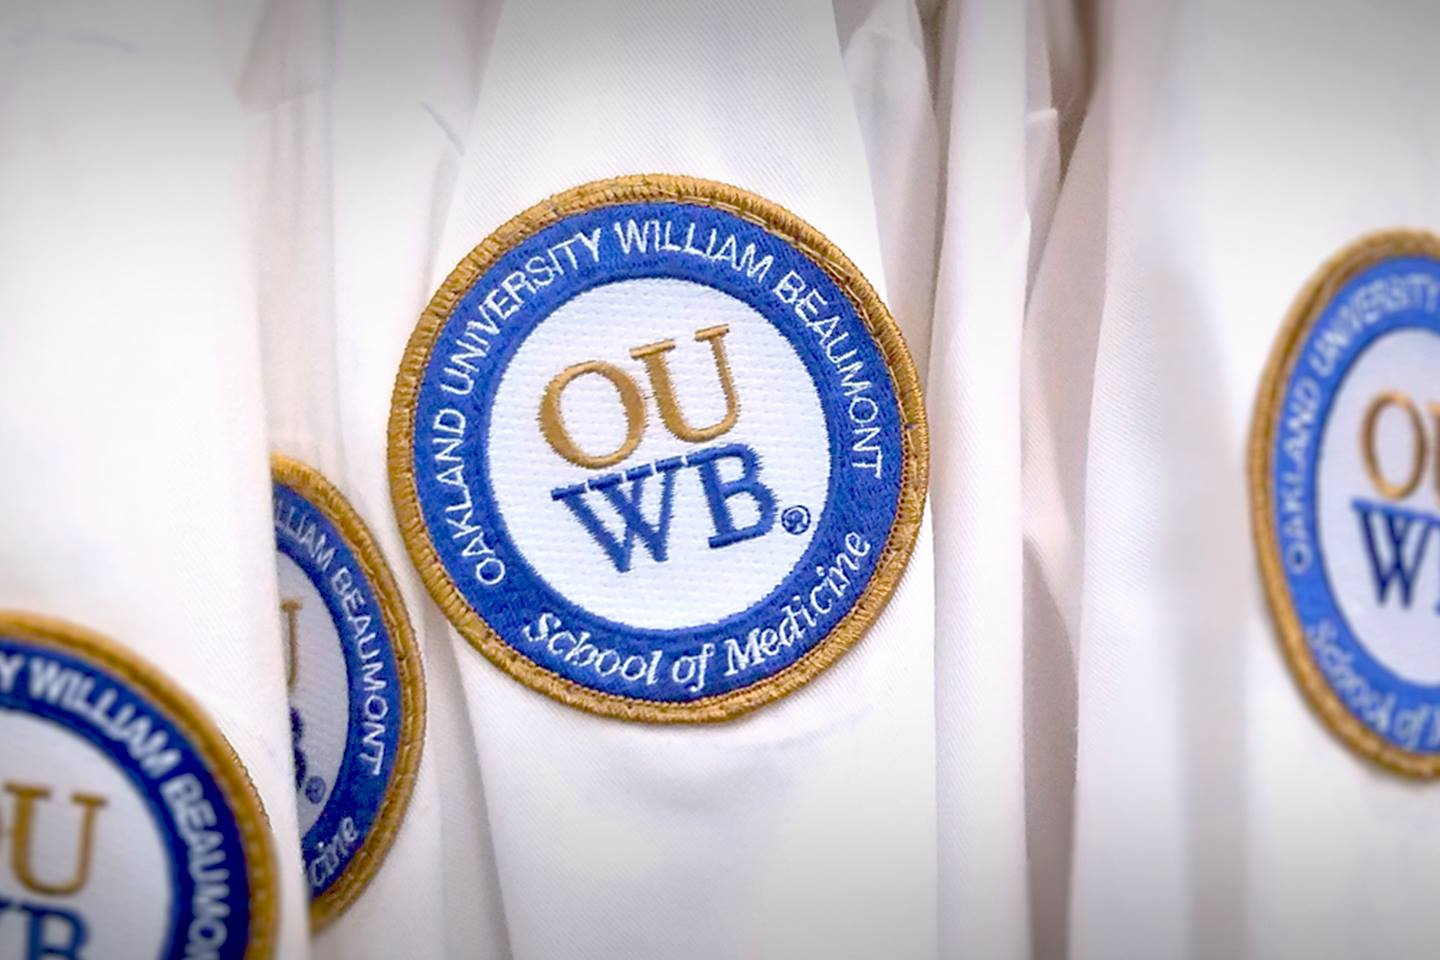 OUWB patch